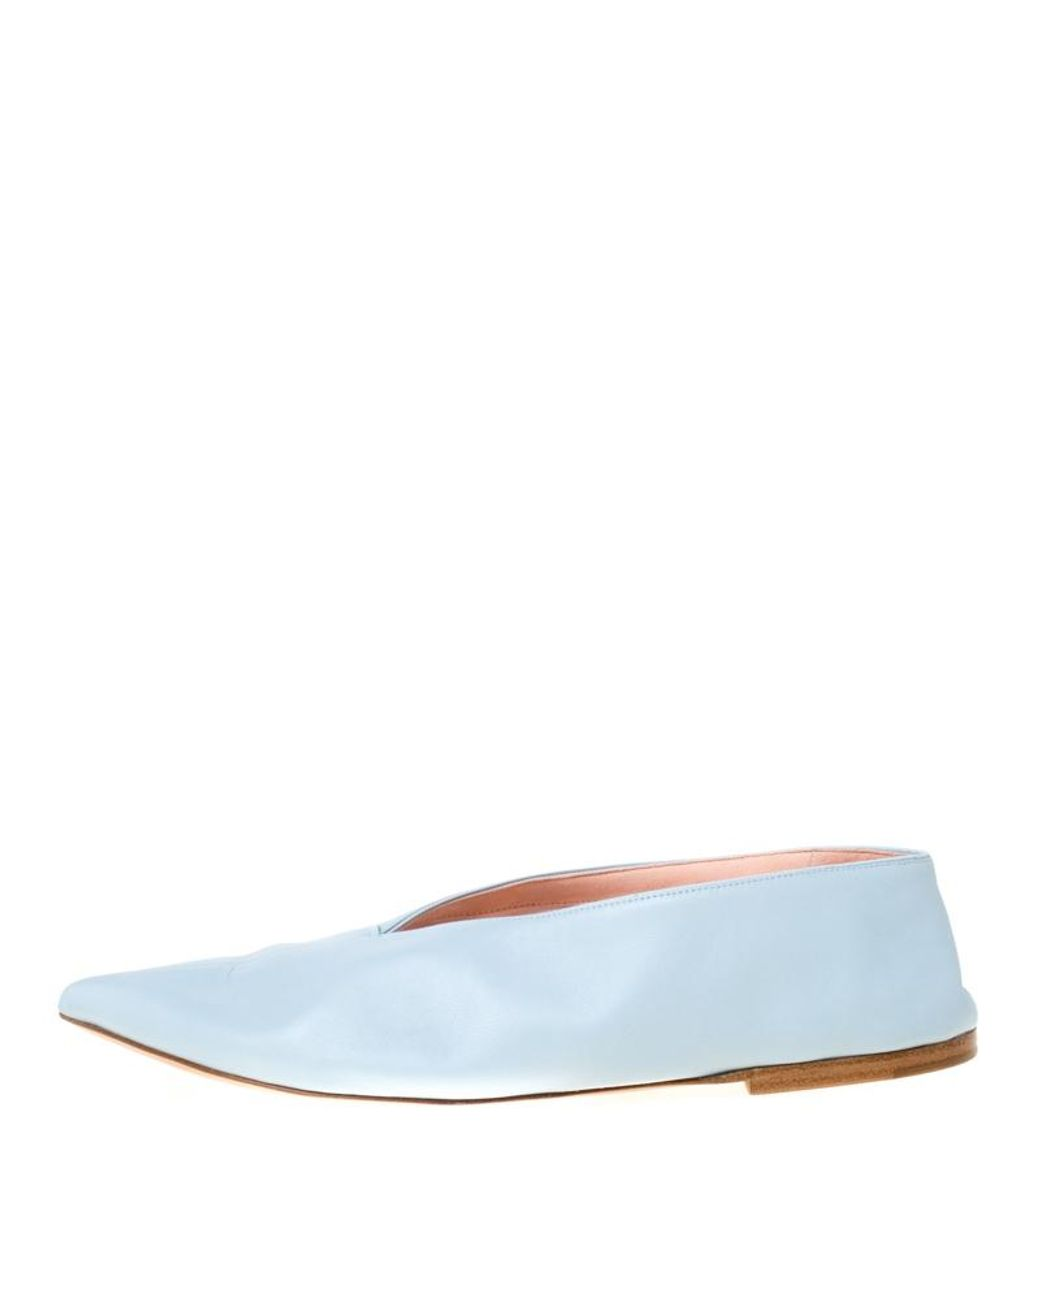 Céline Light Blue Leather Pointed Toe Flats Size 39 Lyst